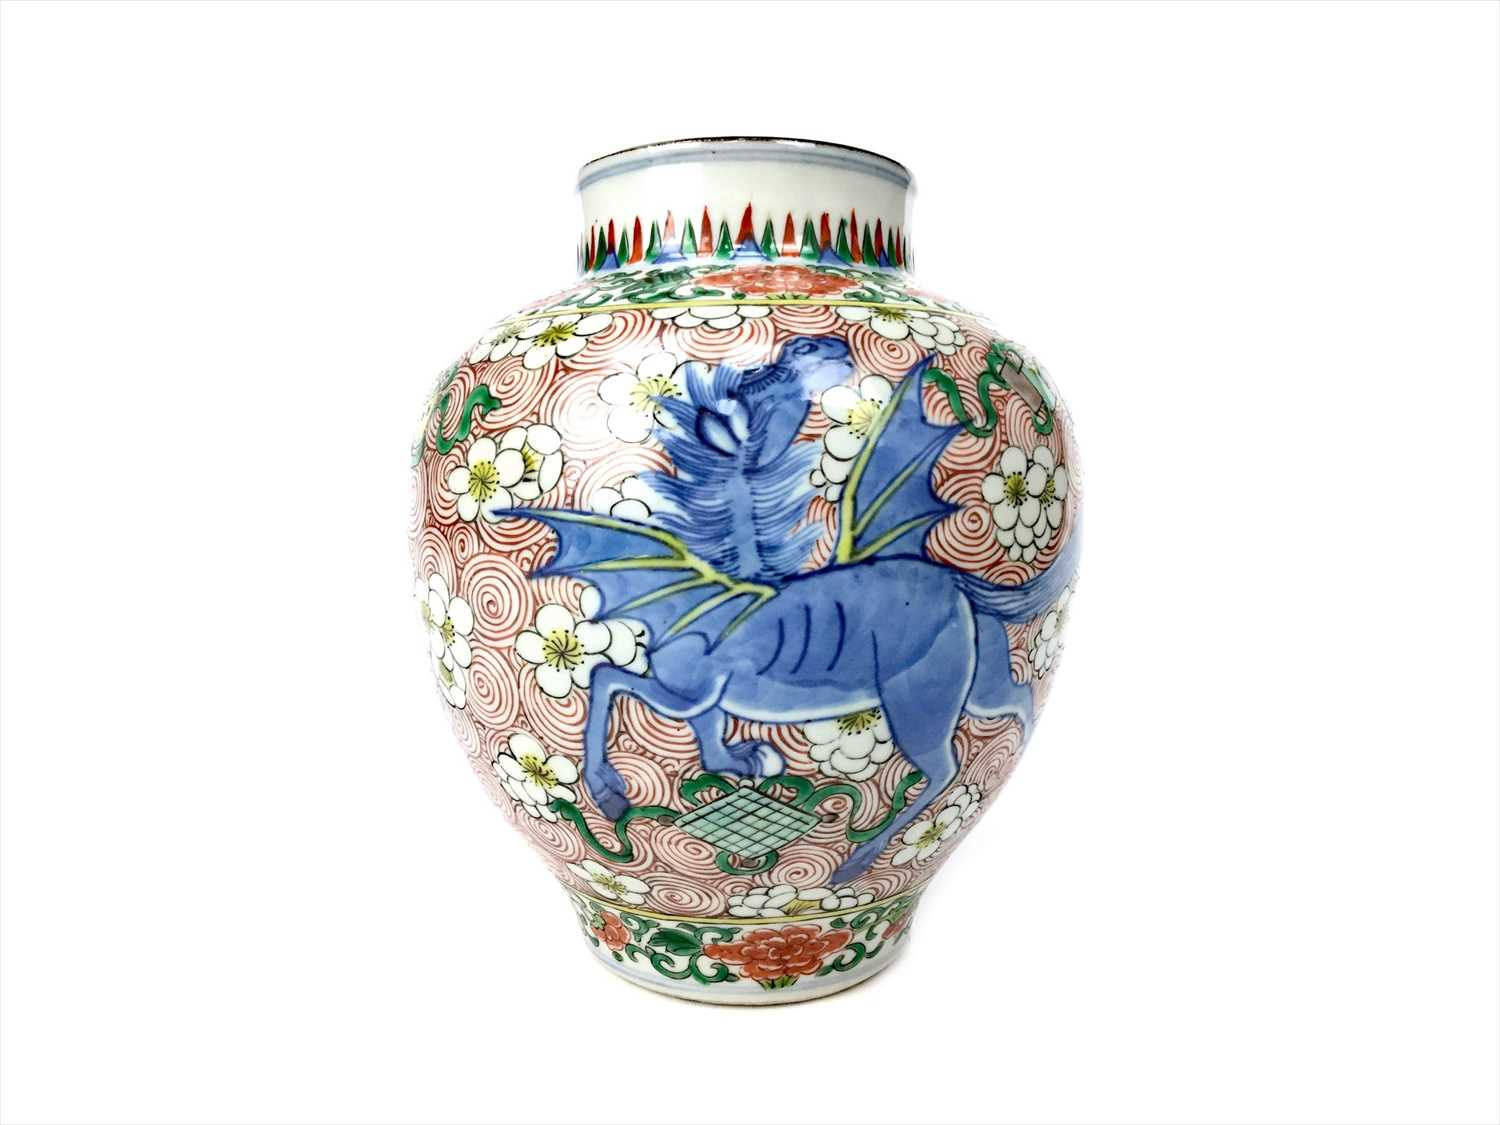 Lot 1027-AN EARLY 20TH CENTURY CHINESE WUCAI VASE